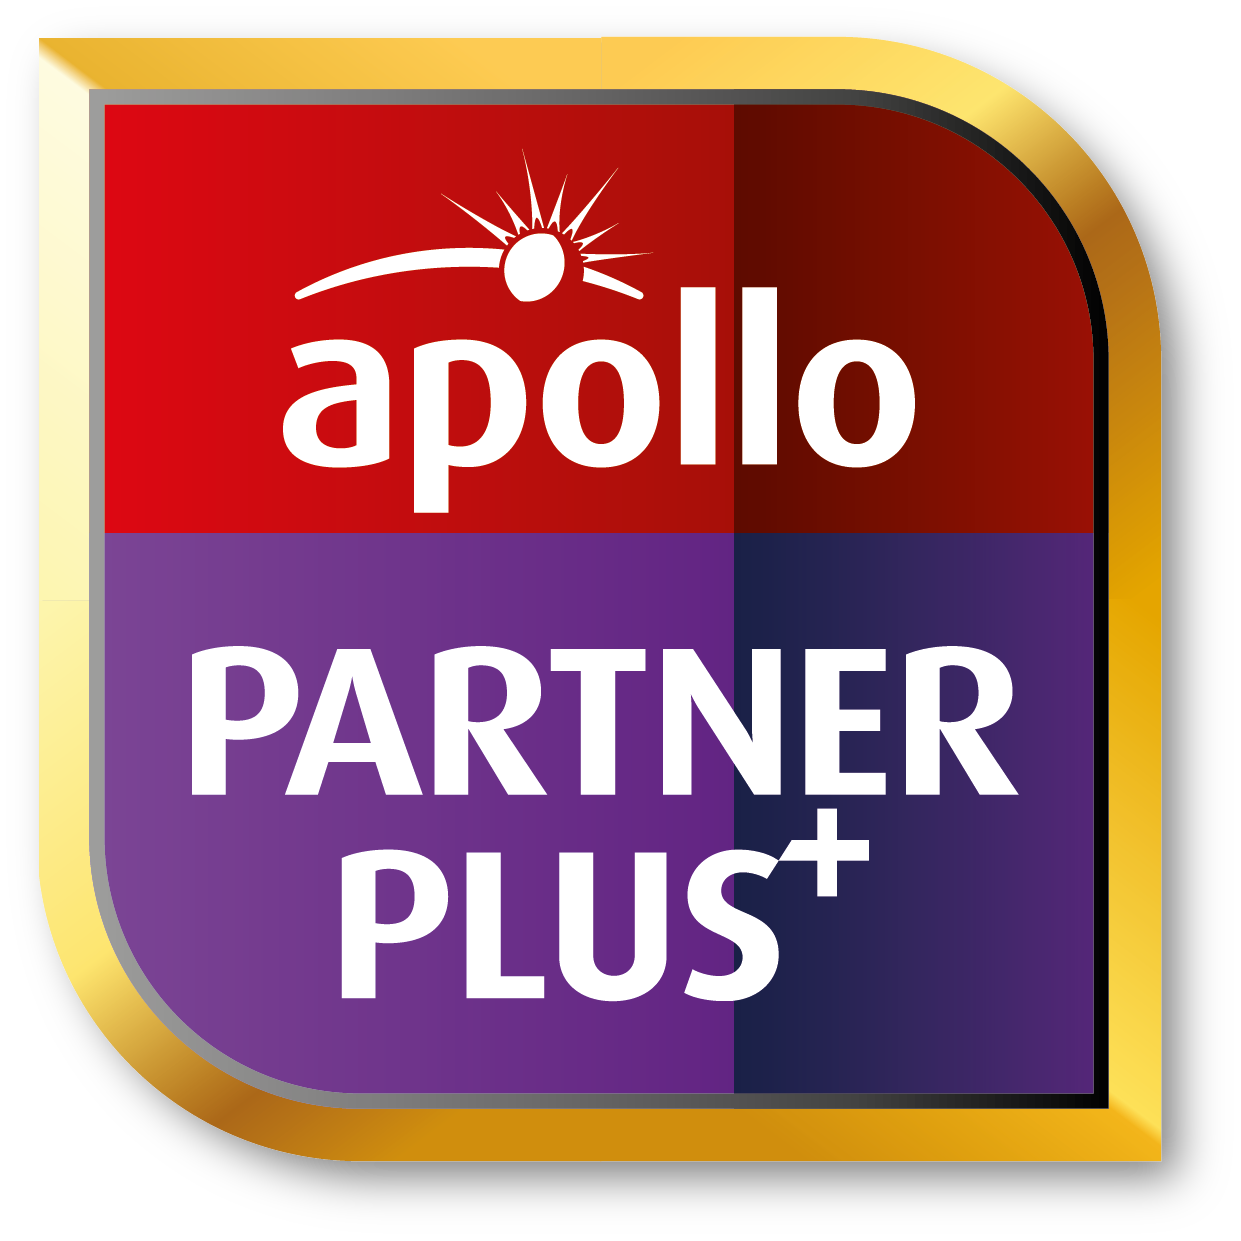 Apollo Partner Plus Badge